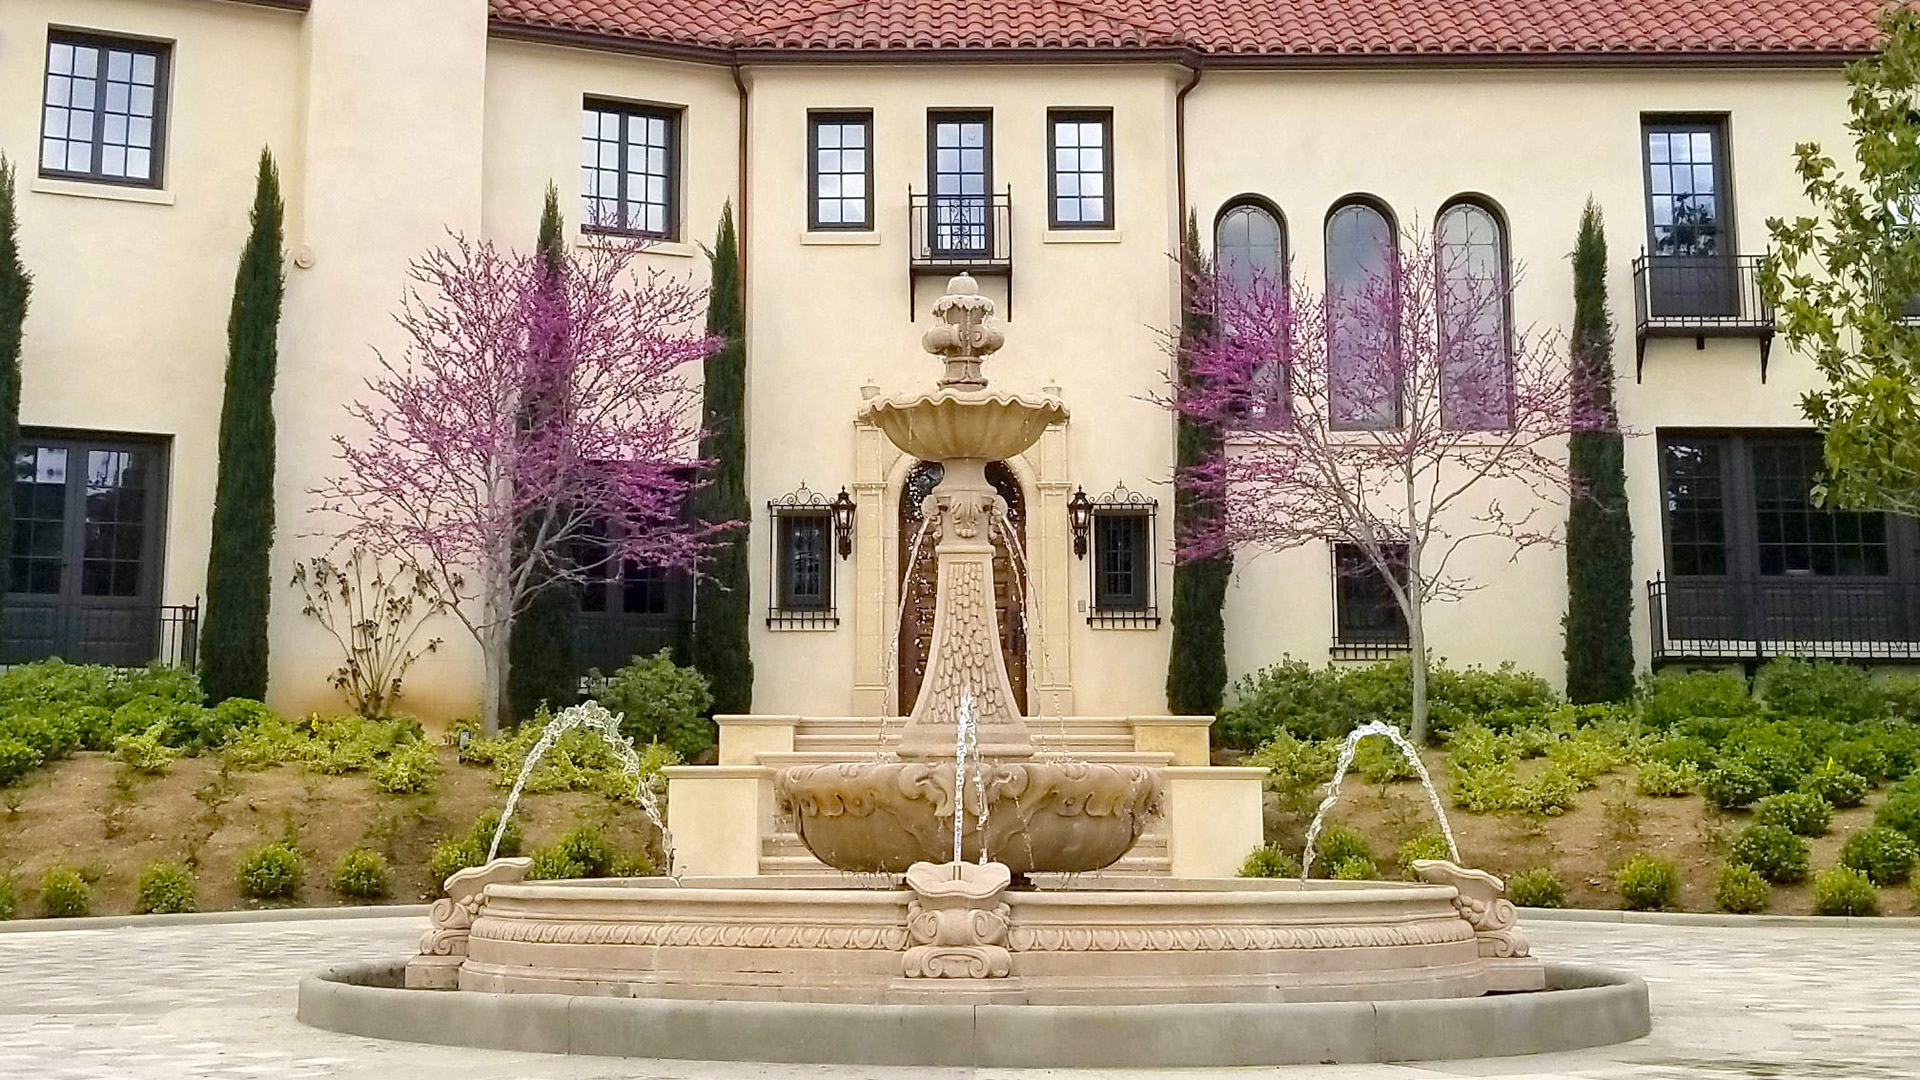 Pasadena Motor Court Fountain